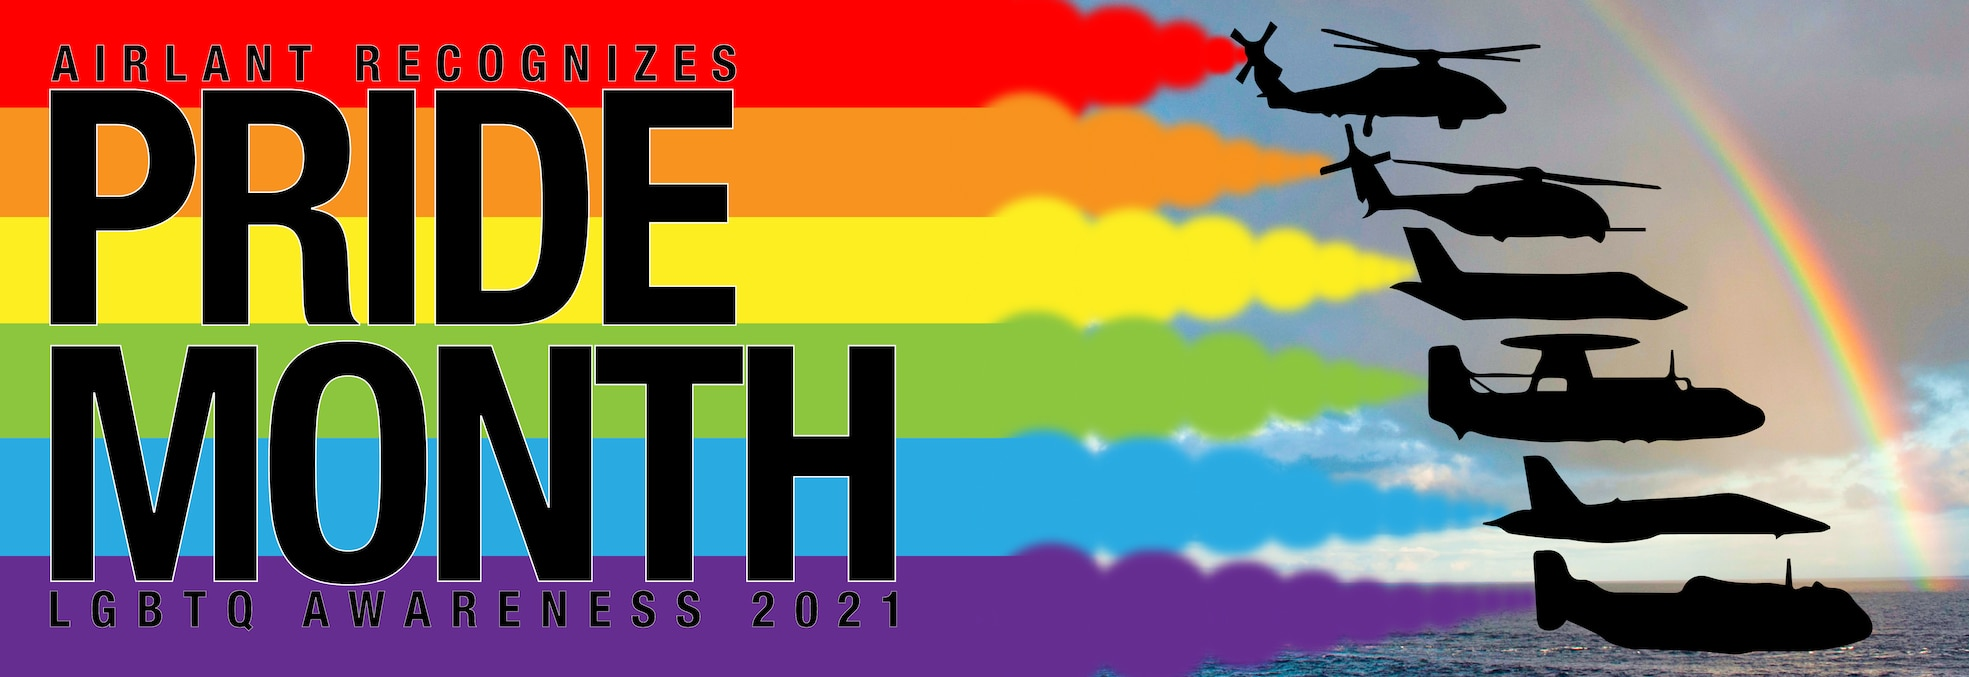 Rainbow banner for Pride month